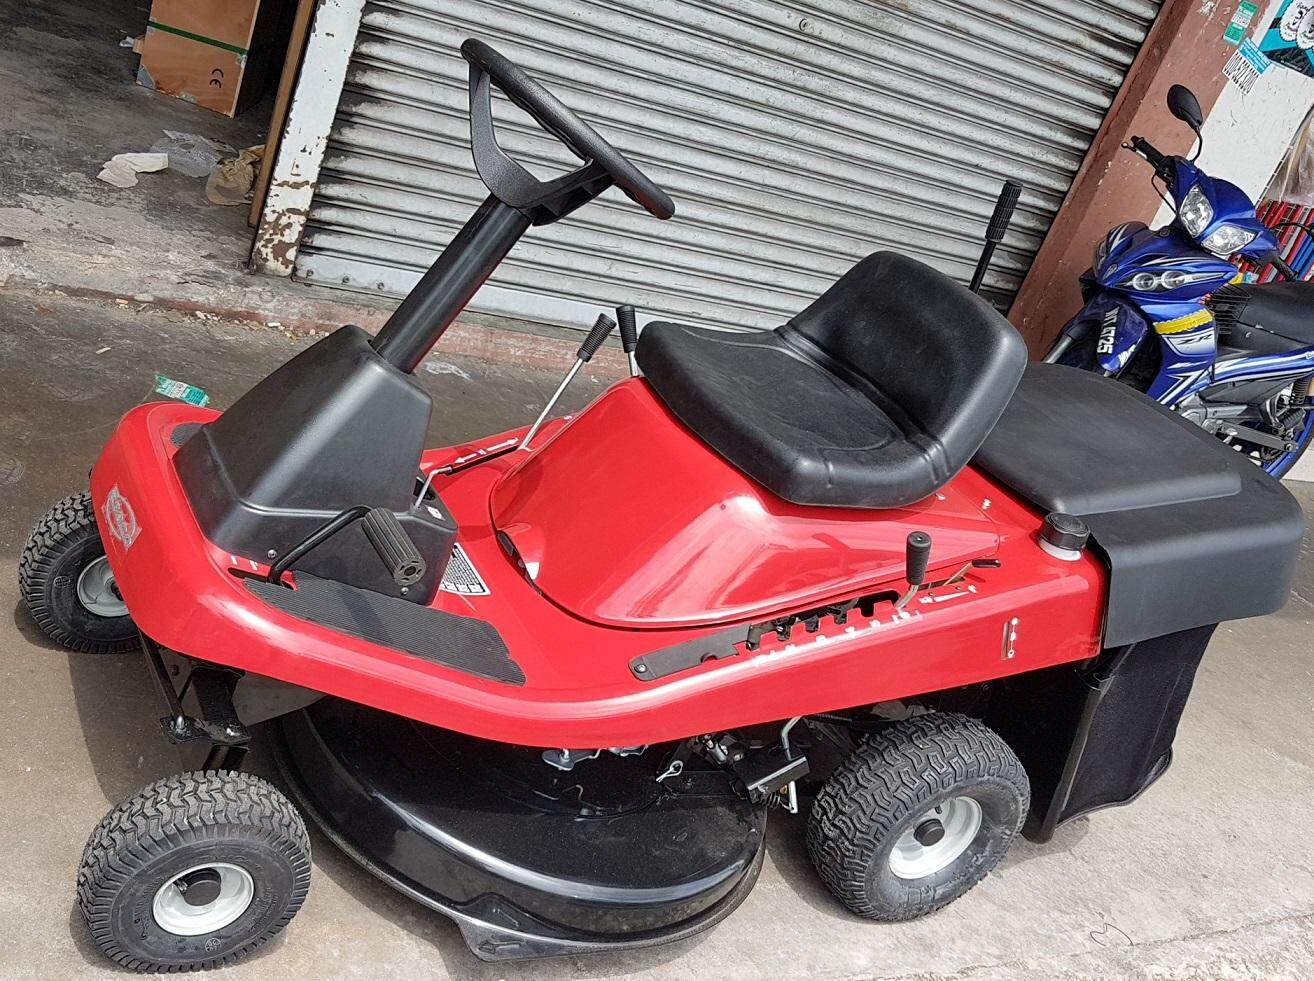 8 hp lawn mower grass brush leaf drive adjustable gas power machine trimmer handle holder steering auto garden floor ground low car truck tractor cutter cut cutting engine petrol blade knife sharp ride top wheel roll roller rolling tire